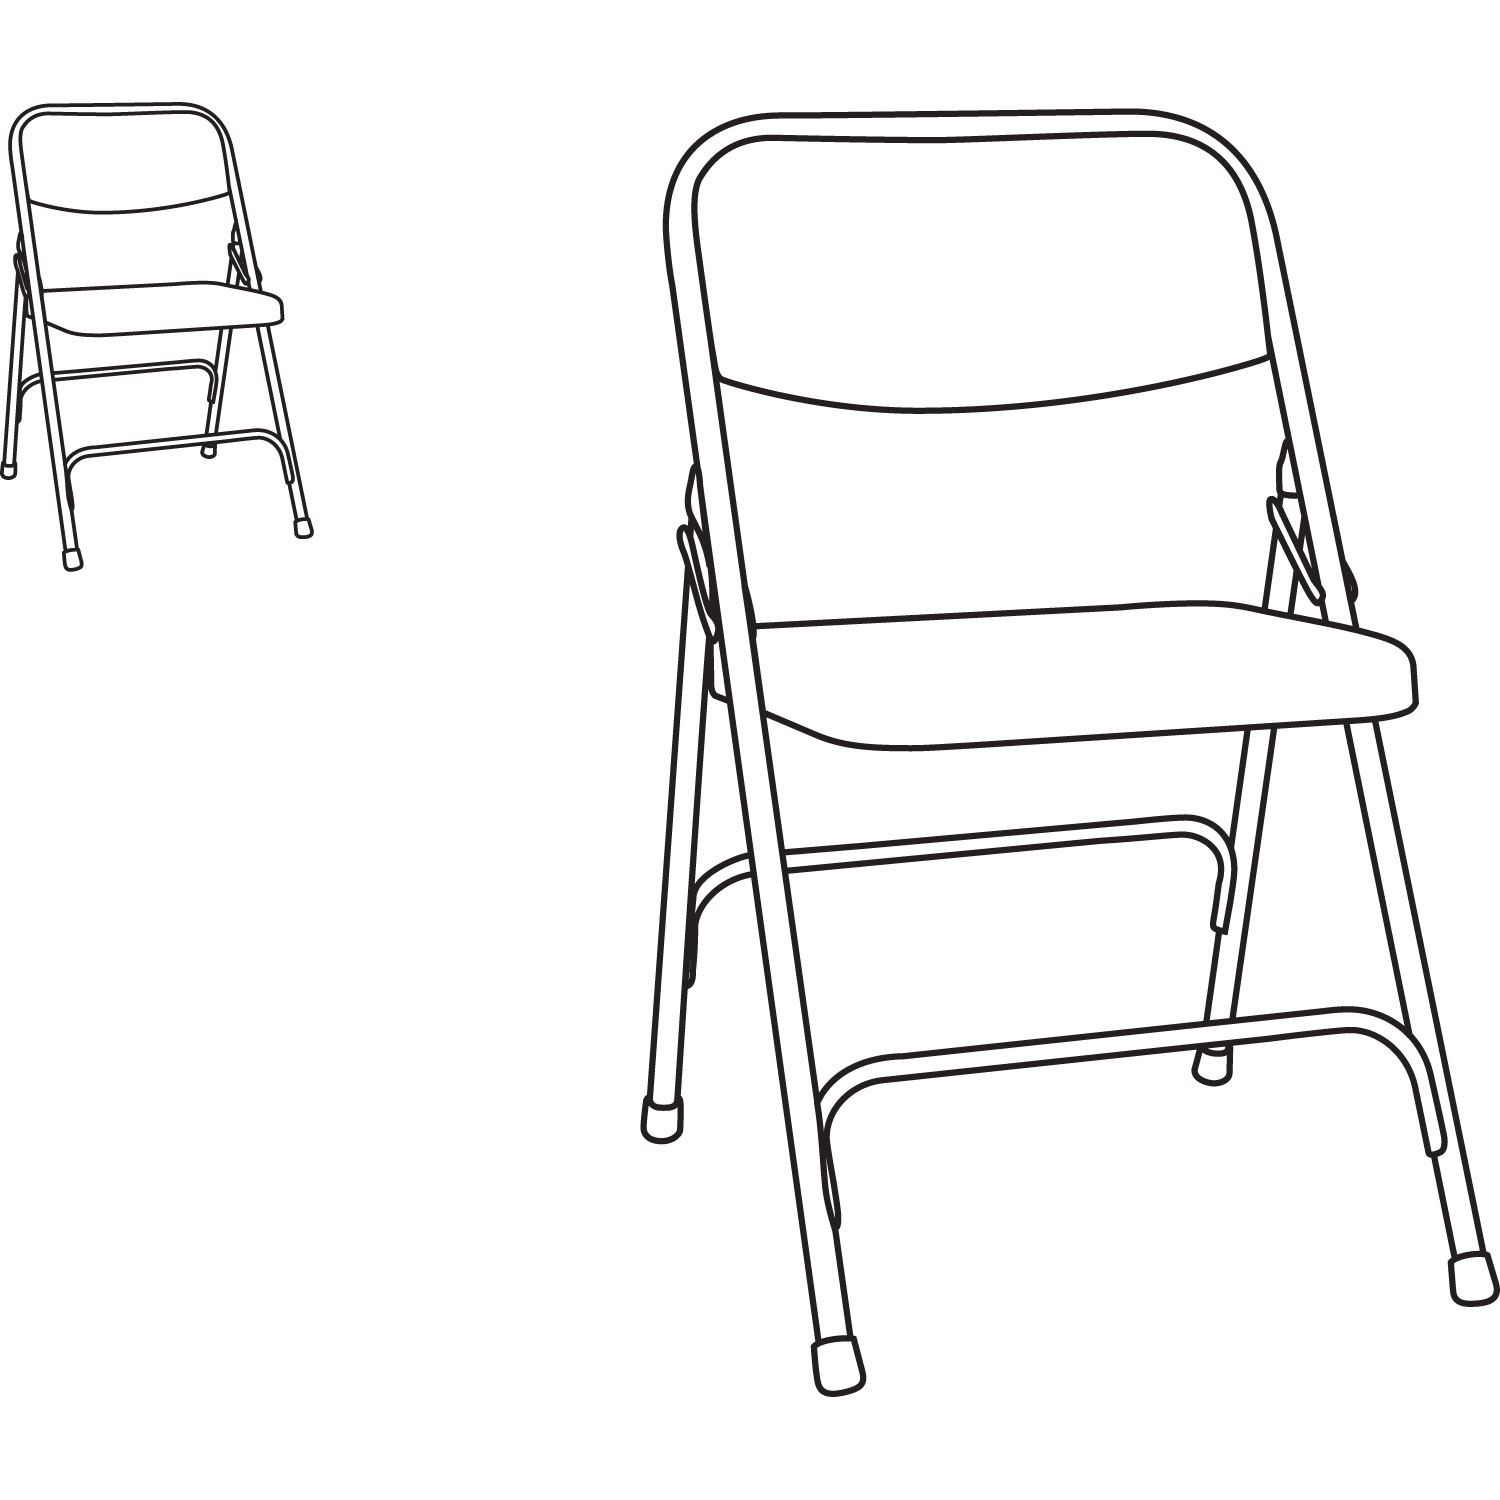 1500x1500 Steel Folding Chair With Two Brace Support By Alefc94t